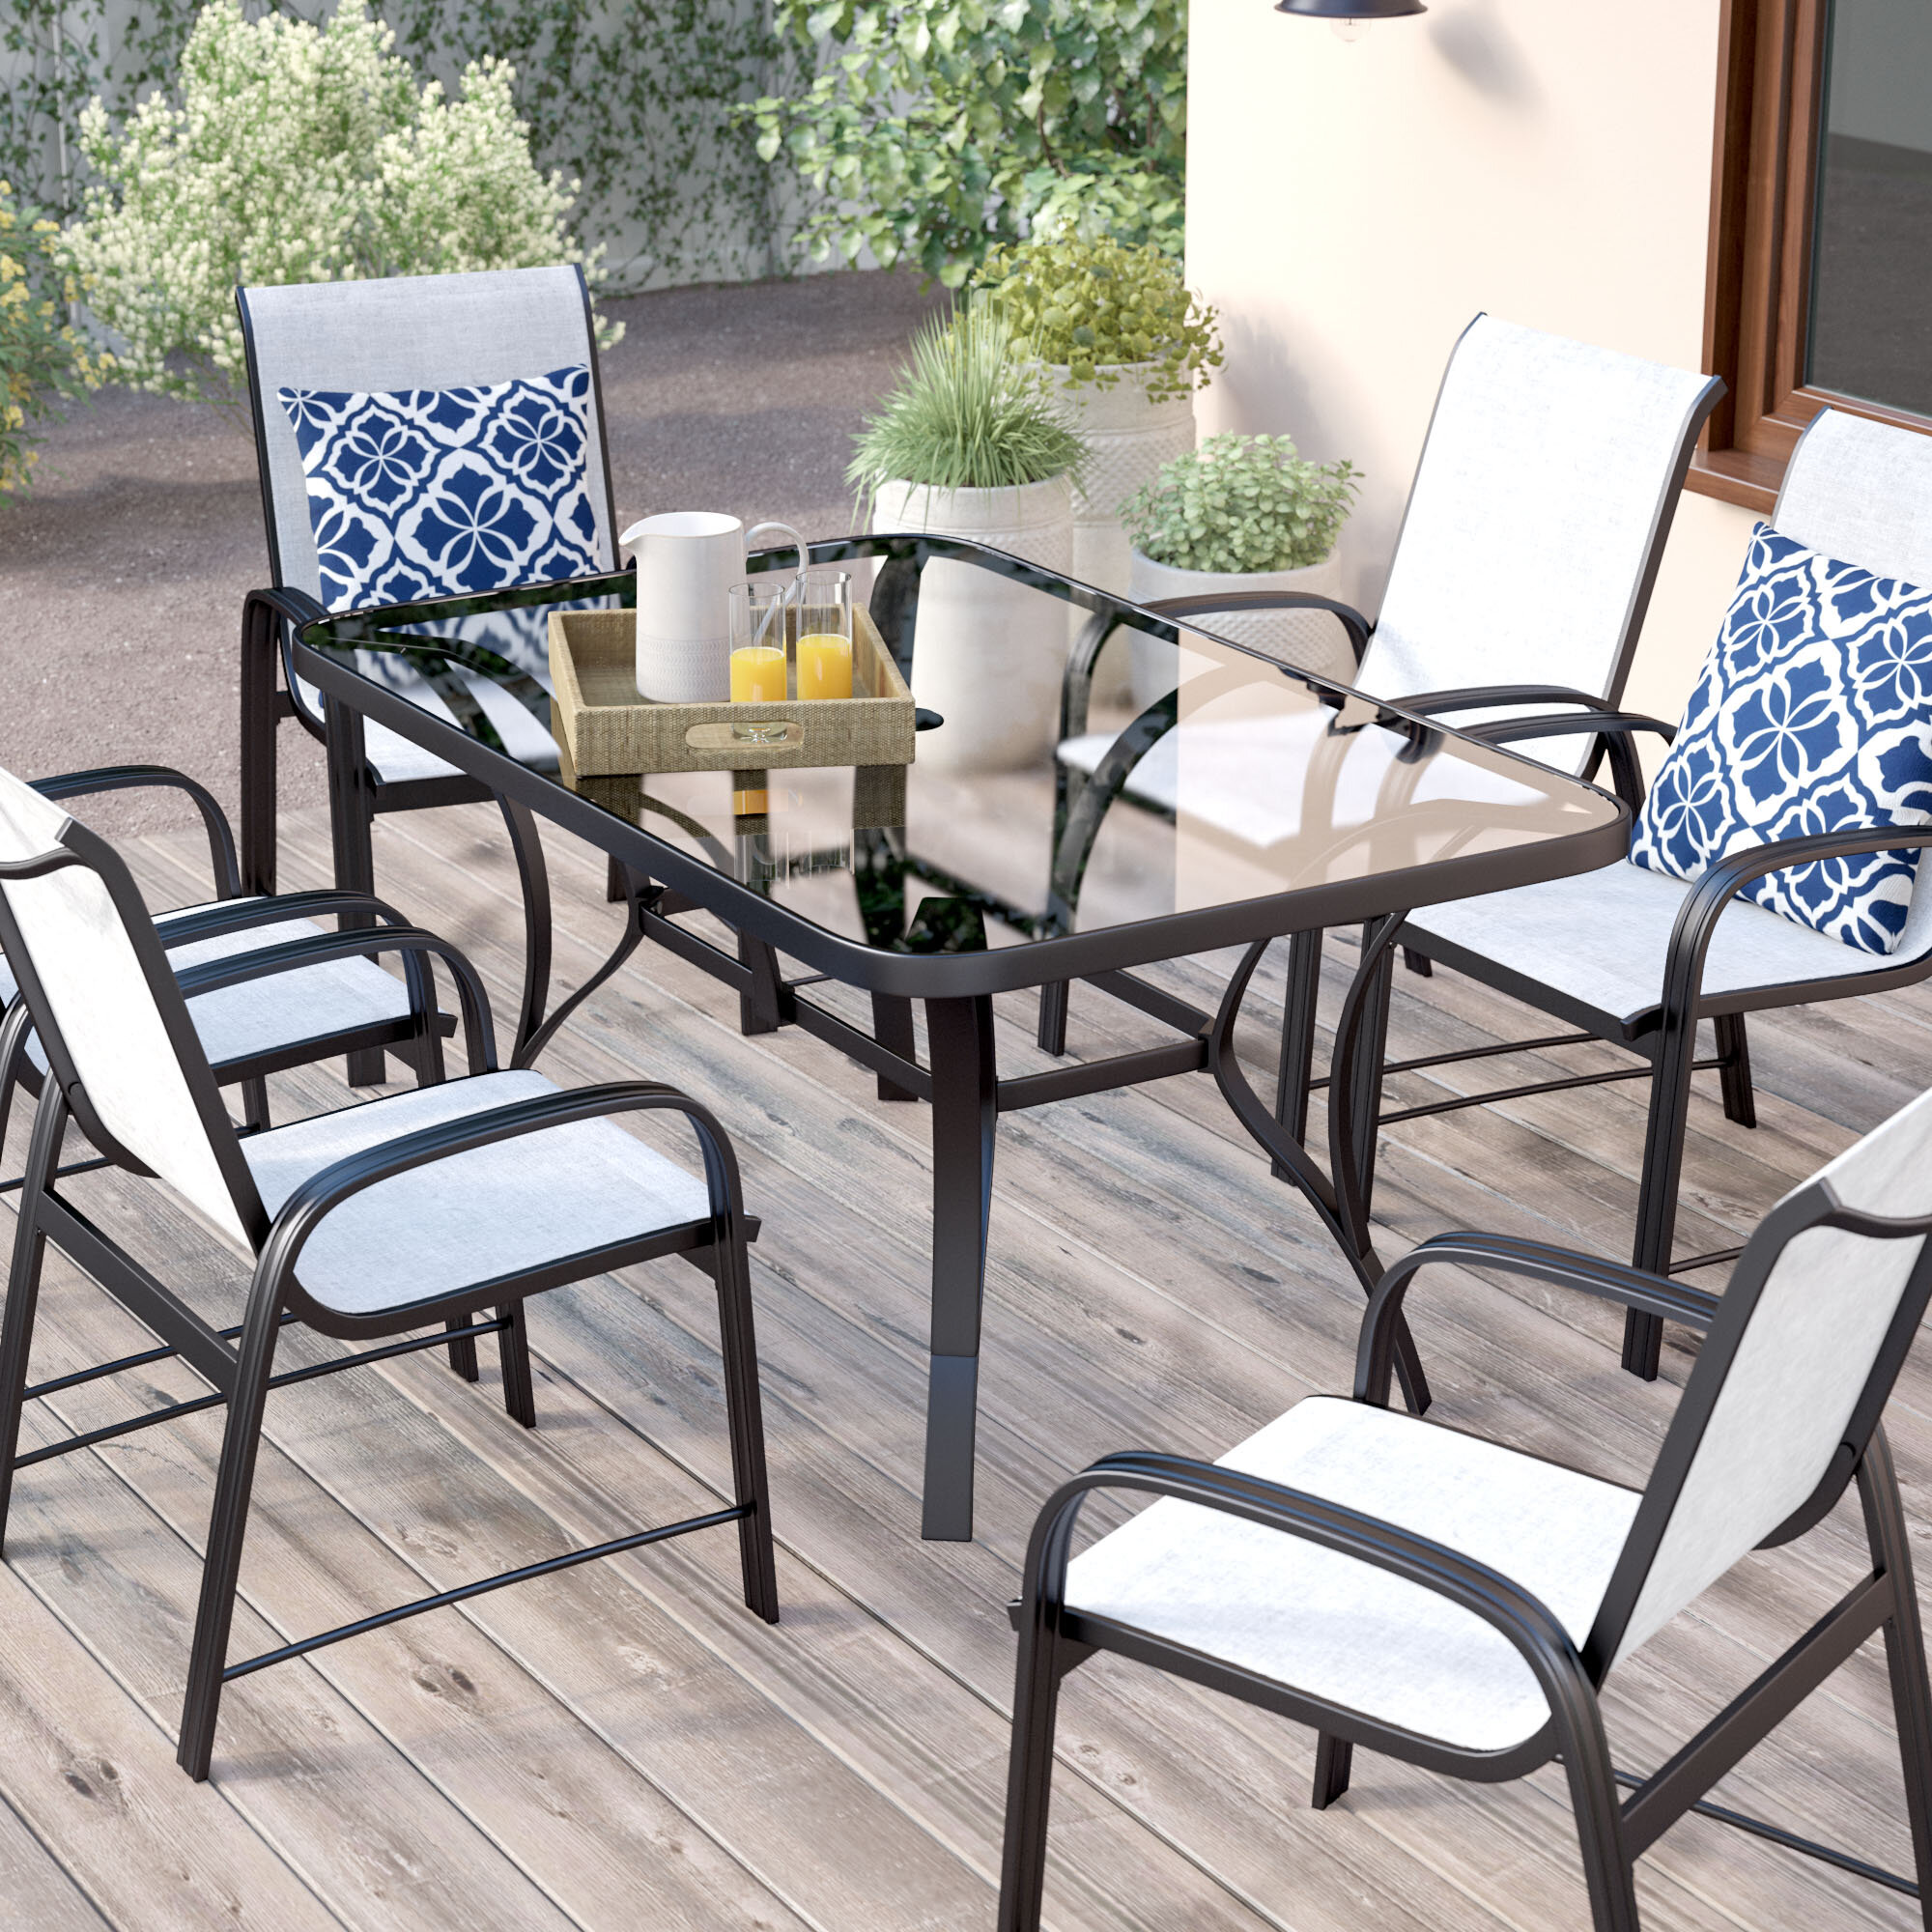 all jerry for furniture patio master set seasons s dining